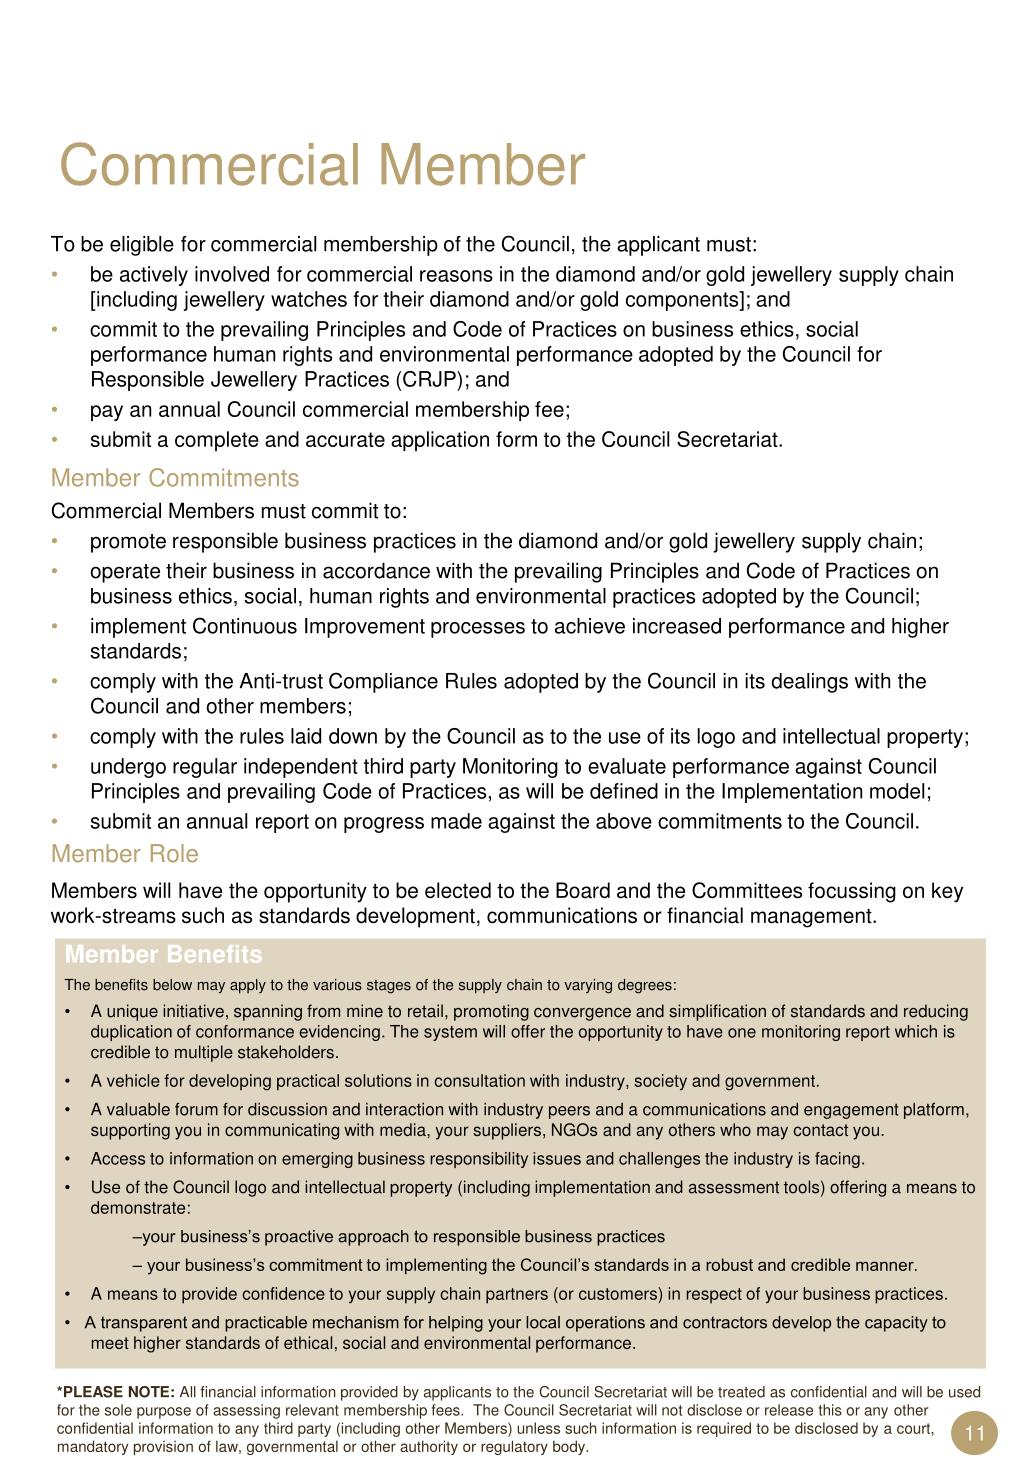 To be eligible for commercial membership of the Council, the applicant must: